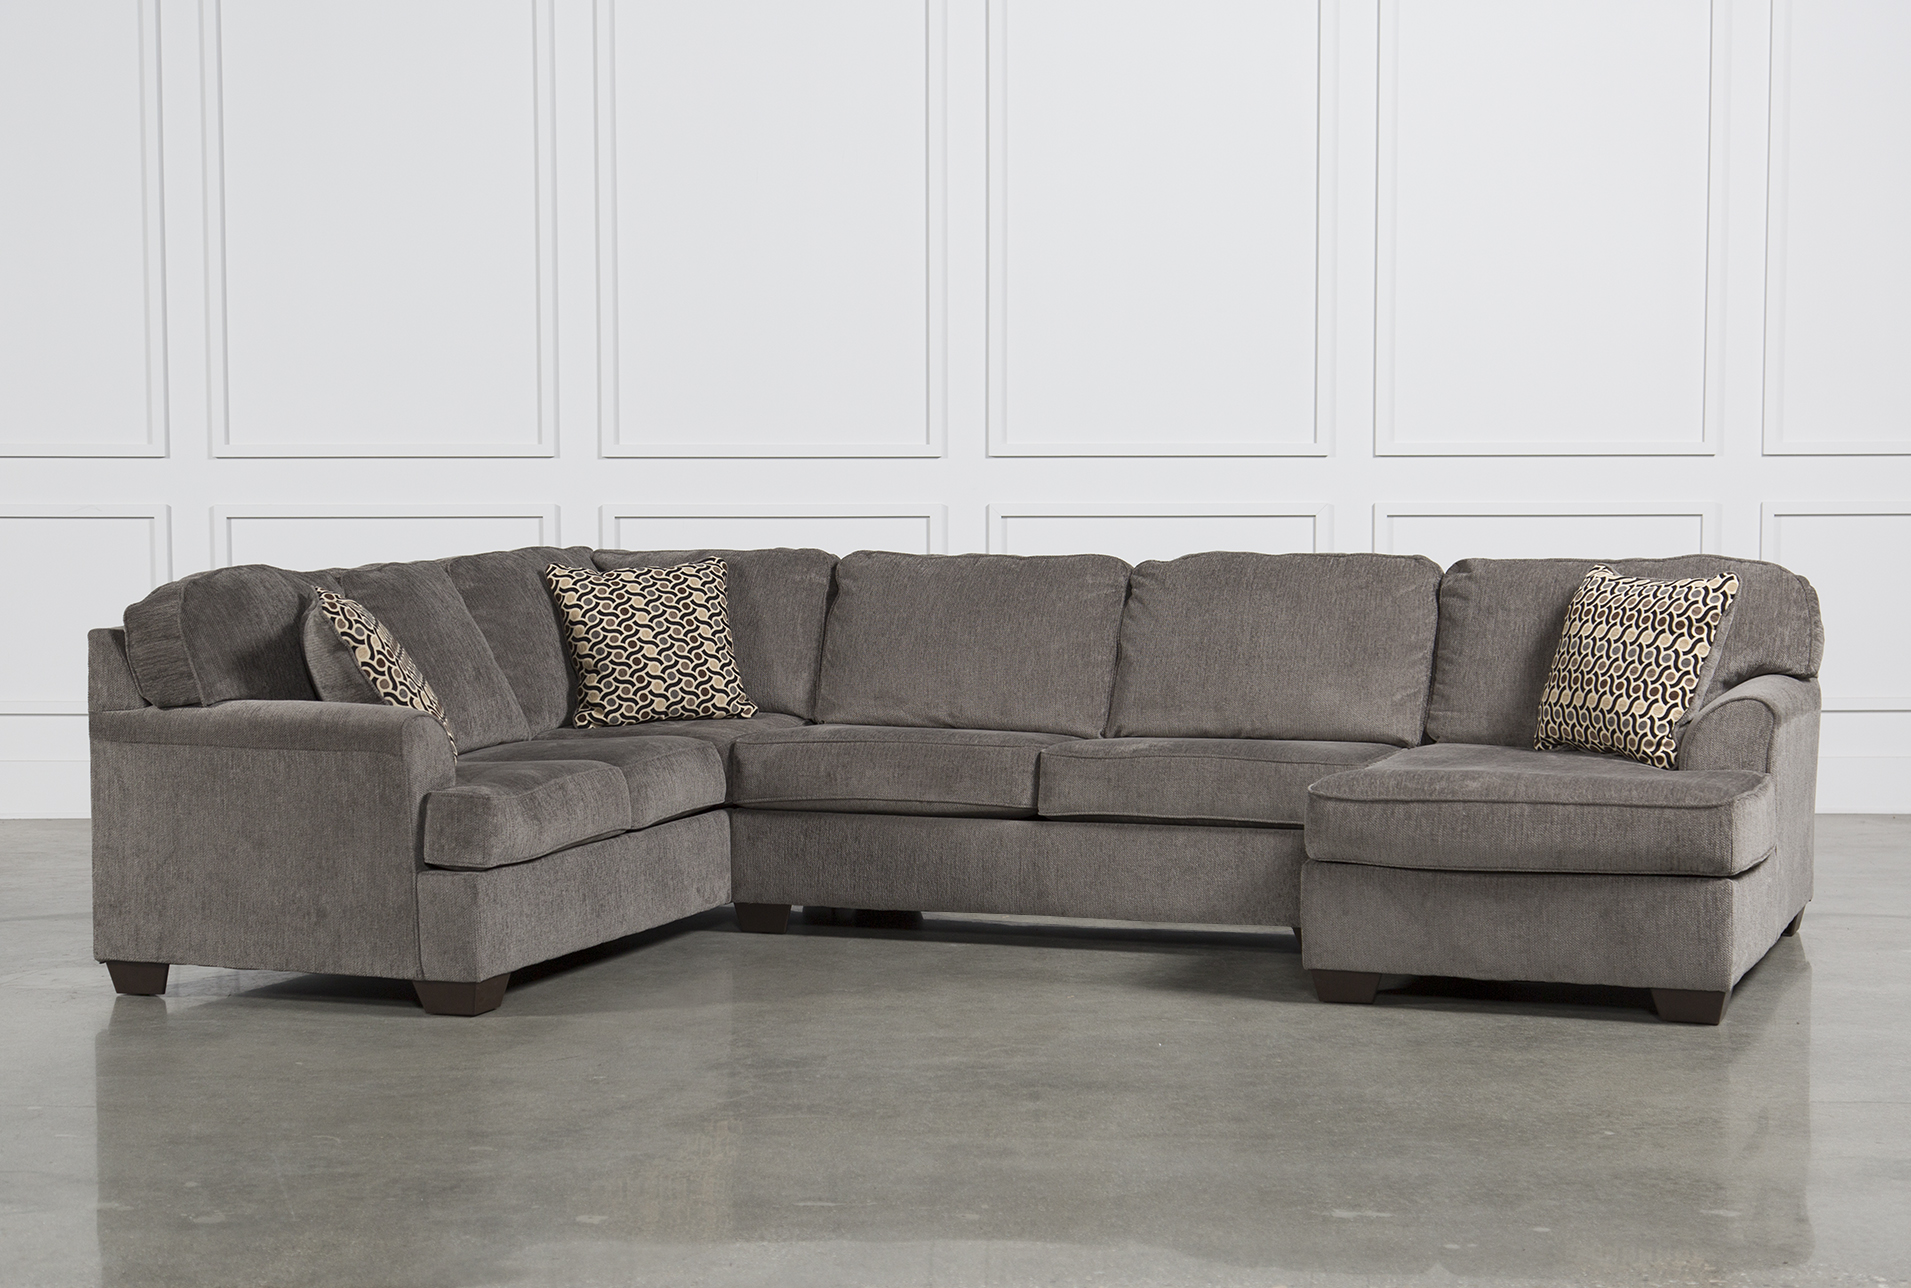 Loric Smoke 3 Piece Sectional W/Raf Chaise (Qty: 1) Has Been Successfully  Added To Your Cart.